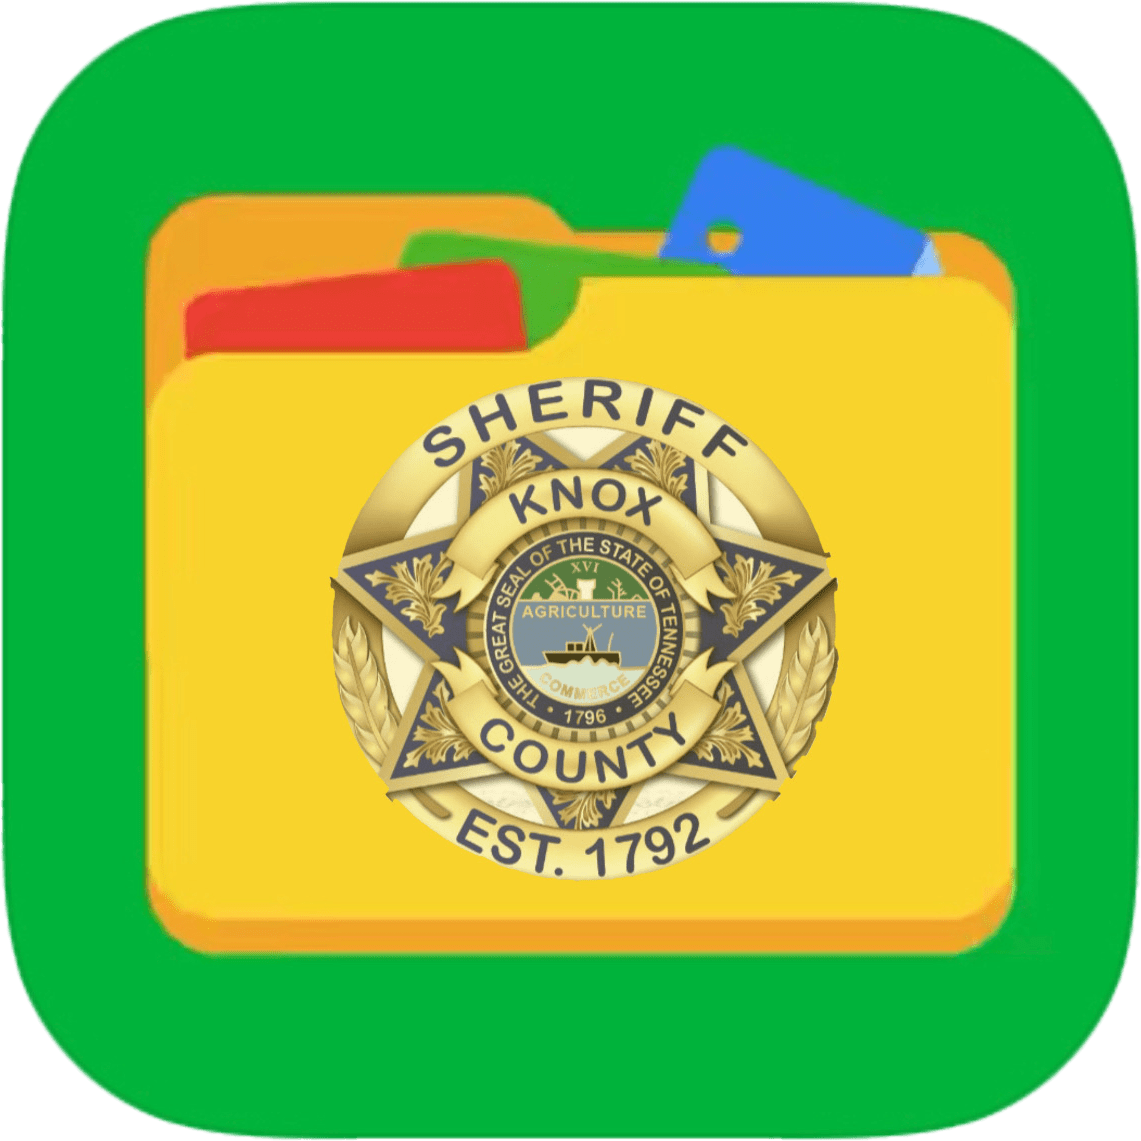 Folder on green background with KCSO badge